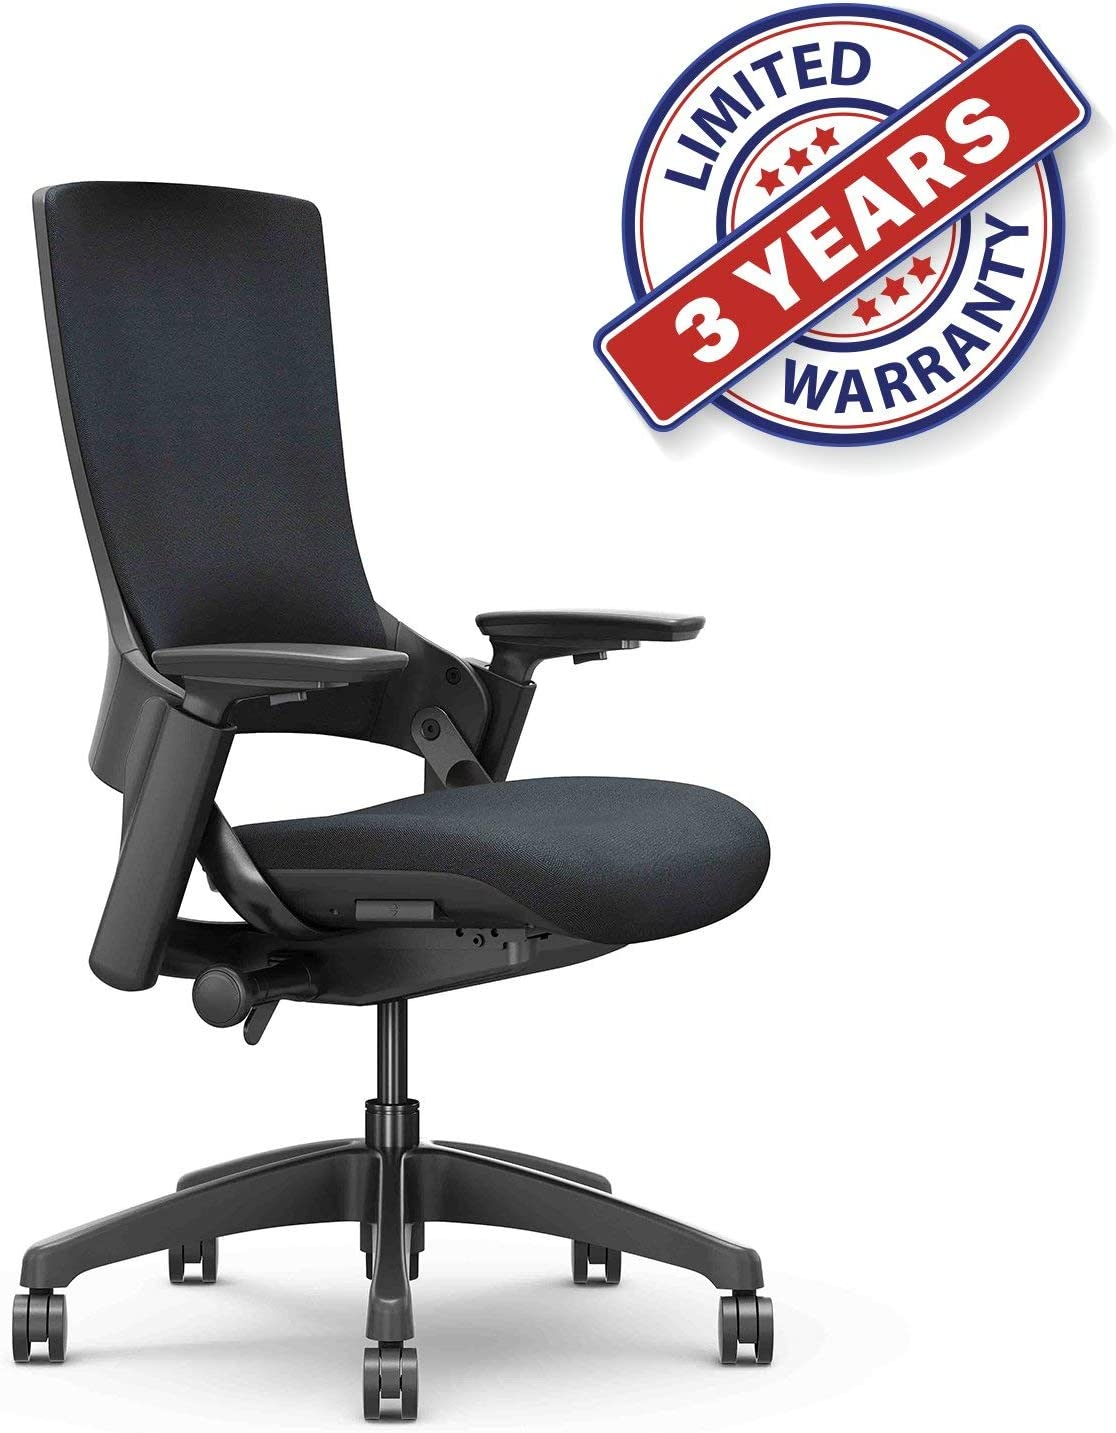 CLATINA Ergonomic High Swivel Executive Chair with Adjustable Height 3D Arm Rest Lumbar Support and Upholstered Back for Home Office Black New Version